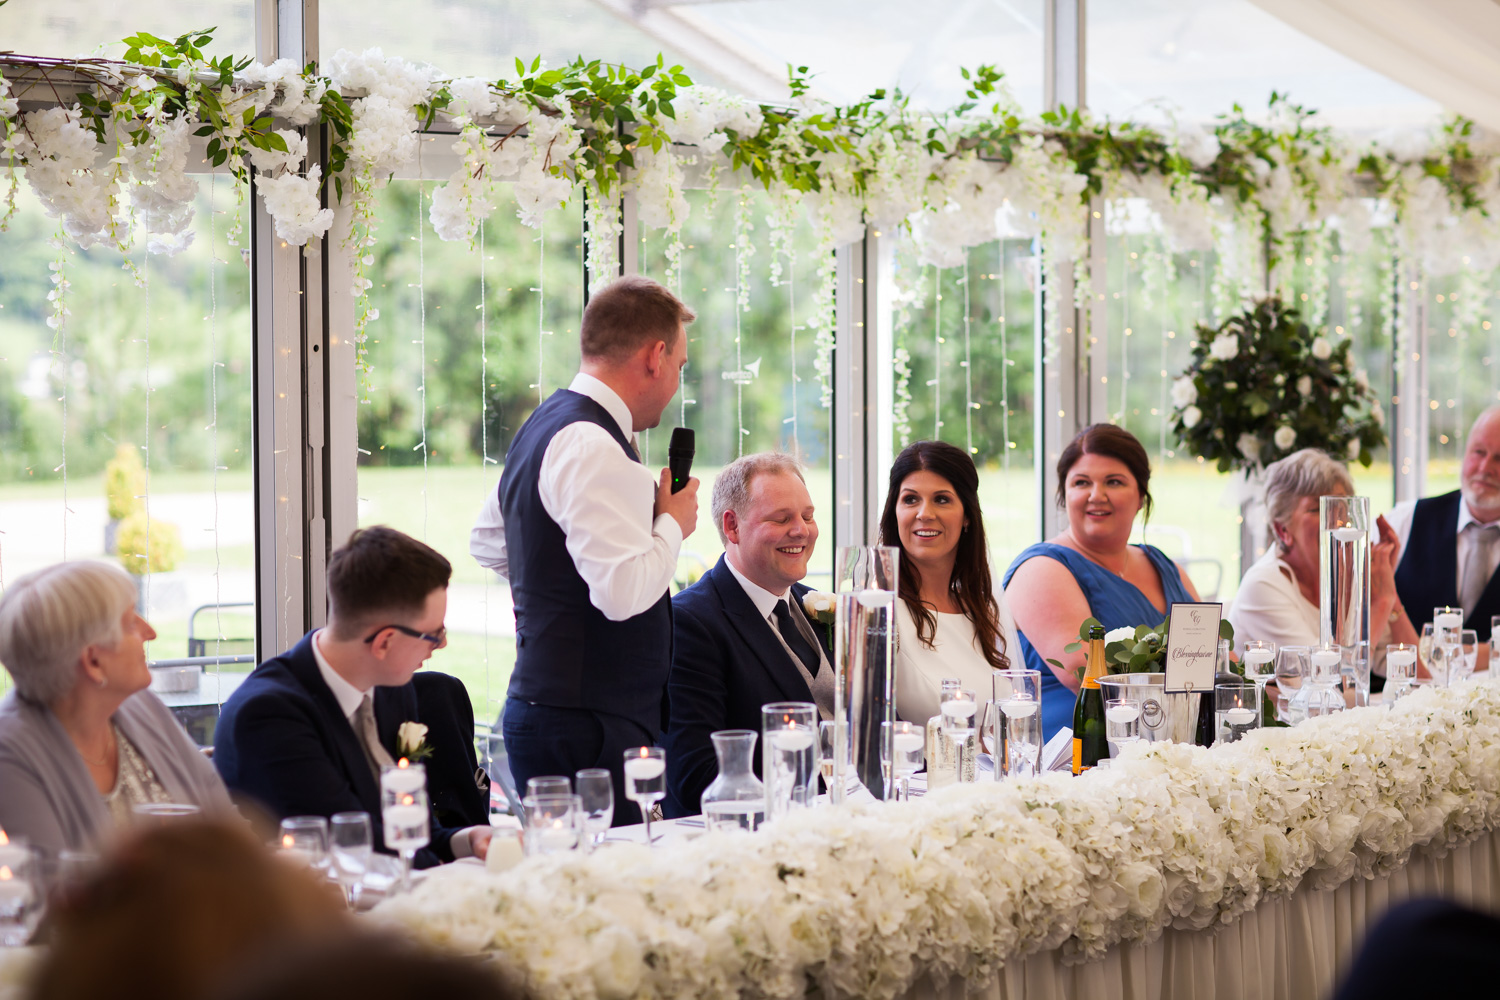 Mark_Barnes_Northern_Ireland_wedding_photographer_Kilmore_House_Wedding_photography_Kilmore_House_wedding_photographer-59.jpg